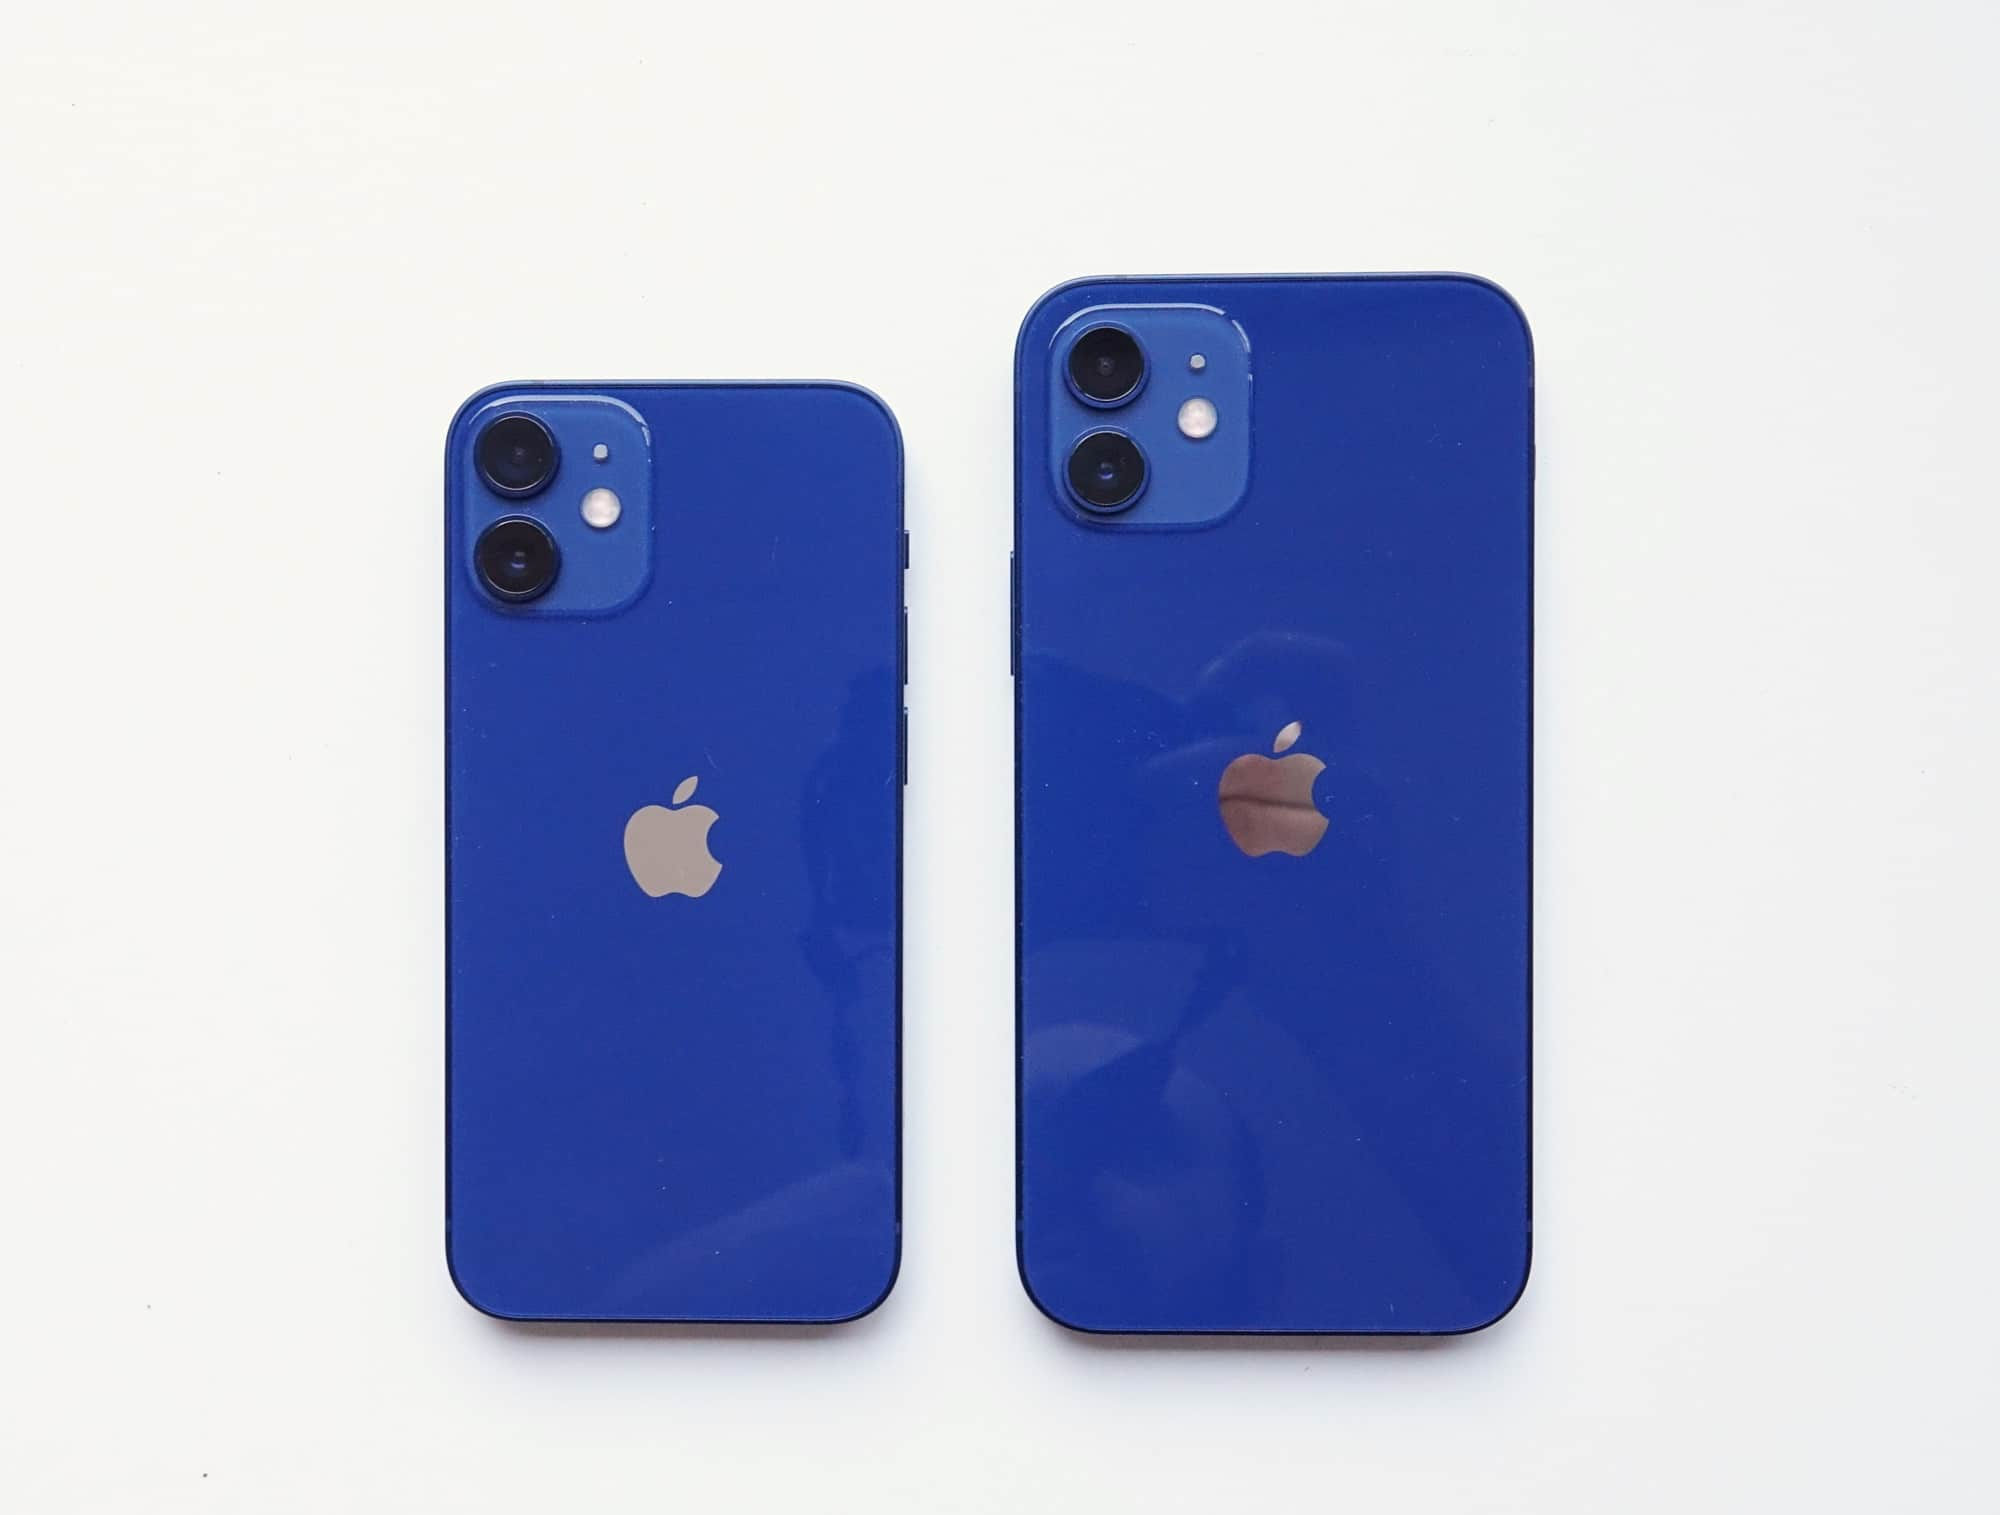 iPhone 12 Mini (left) versus the iPhone 12 (right)